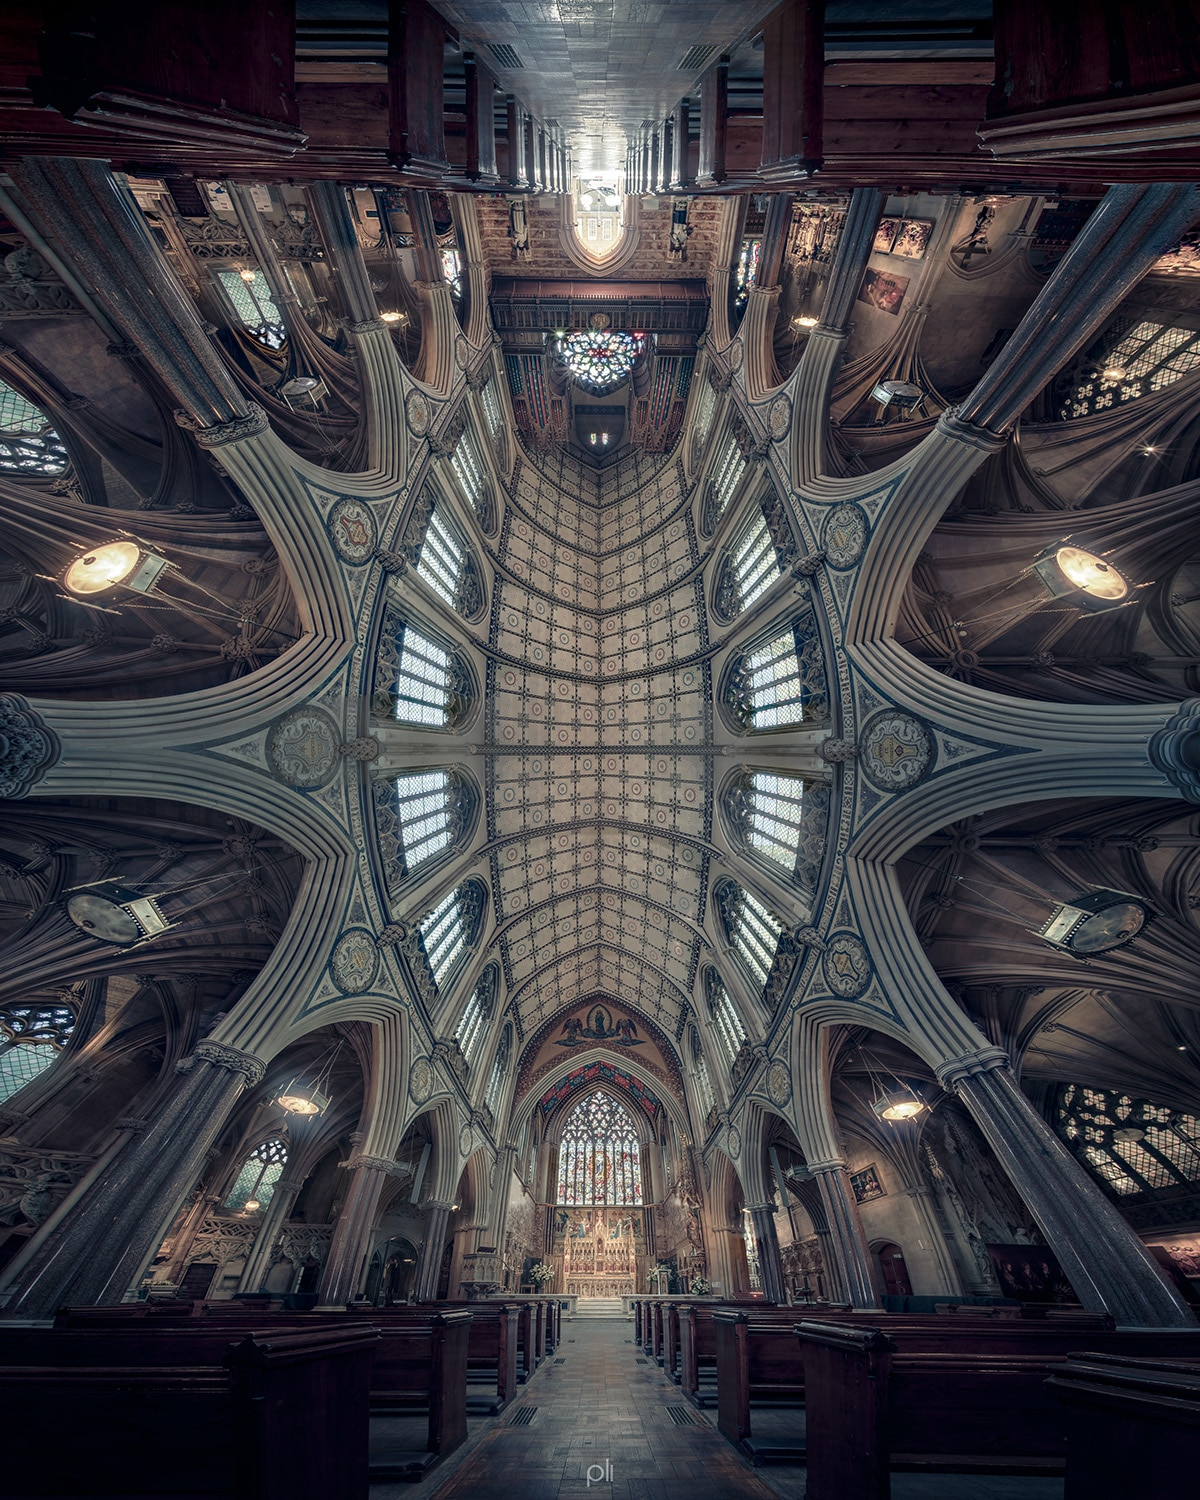 Pano Architectural Photography by Peter Li